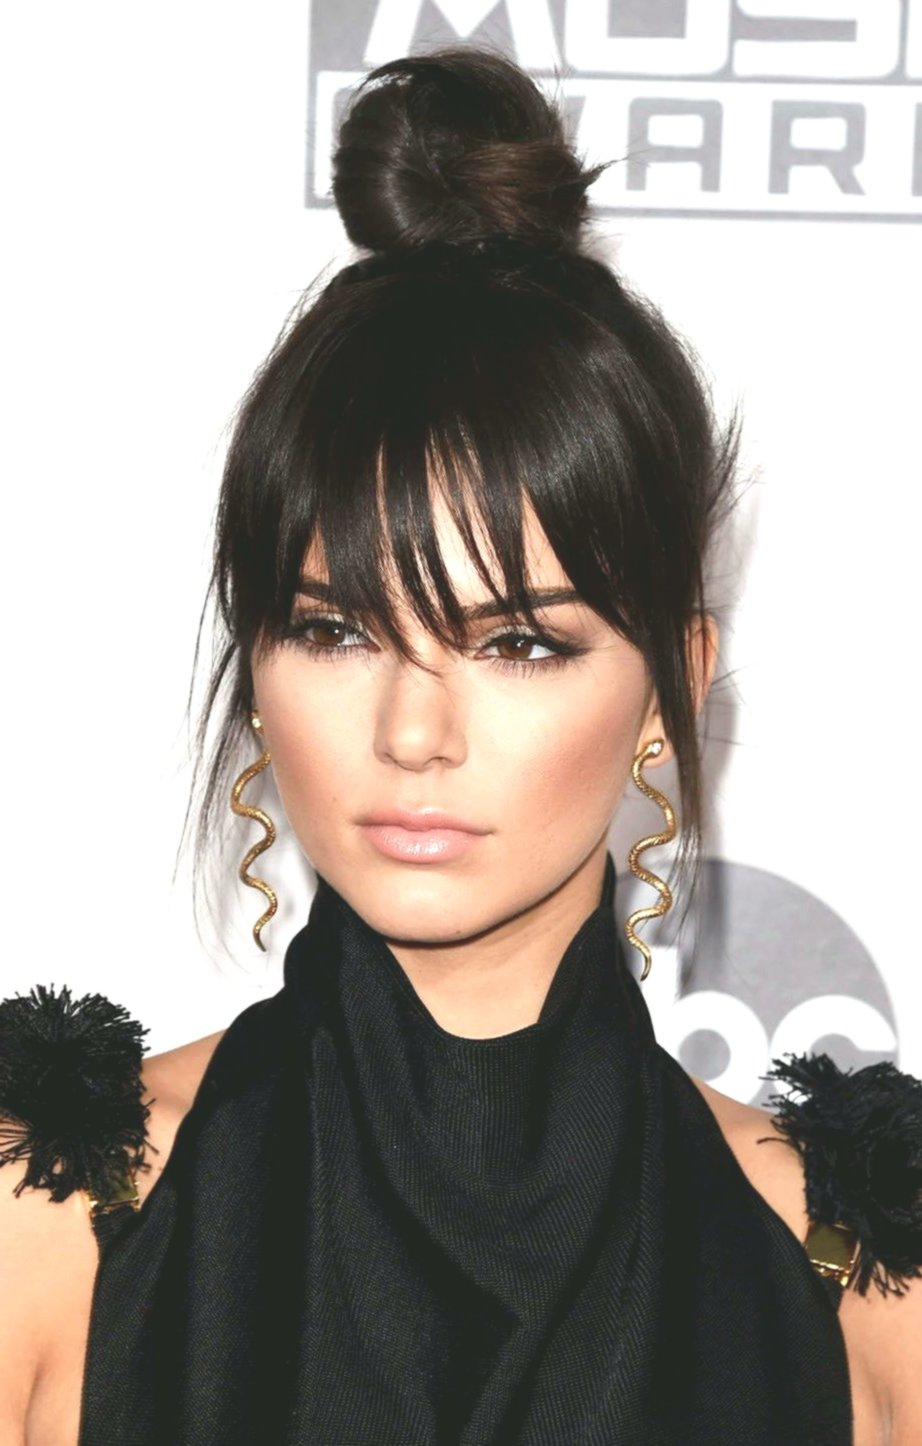 elegant hairstyling instructions photo-Awesome hairstyles instructions wall